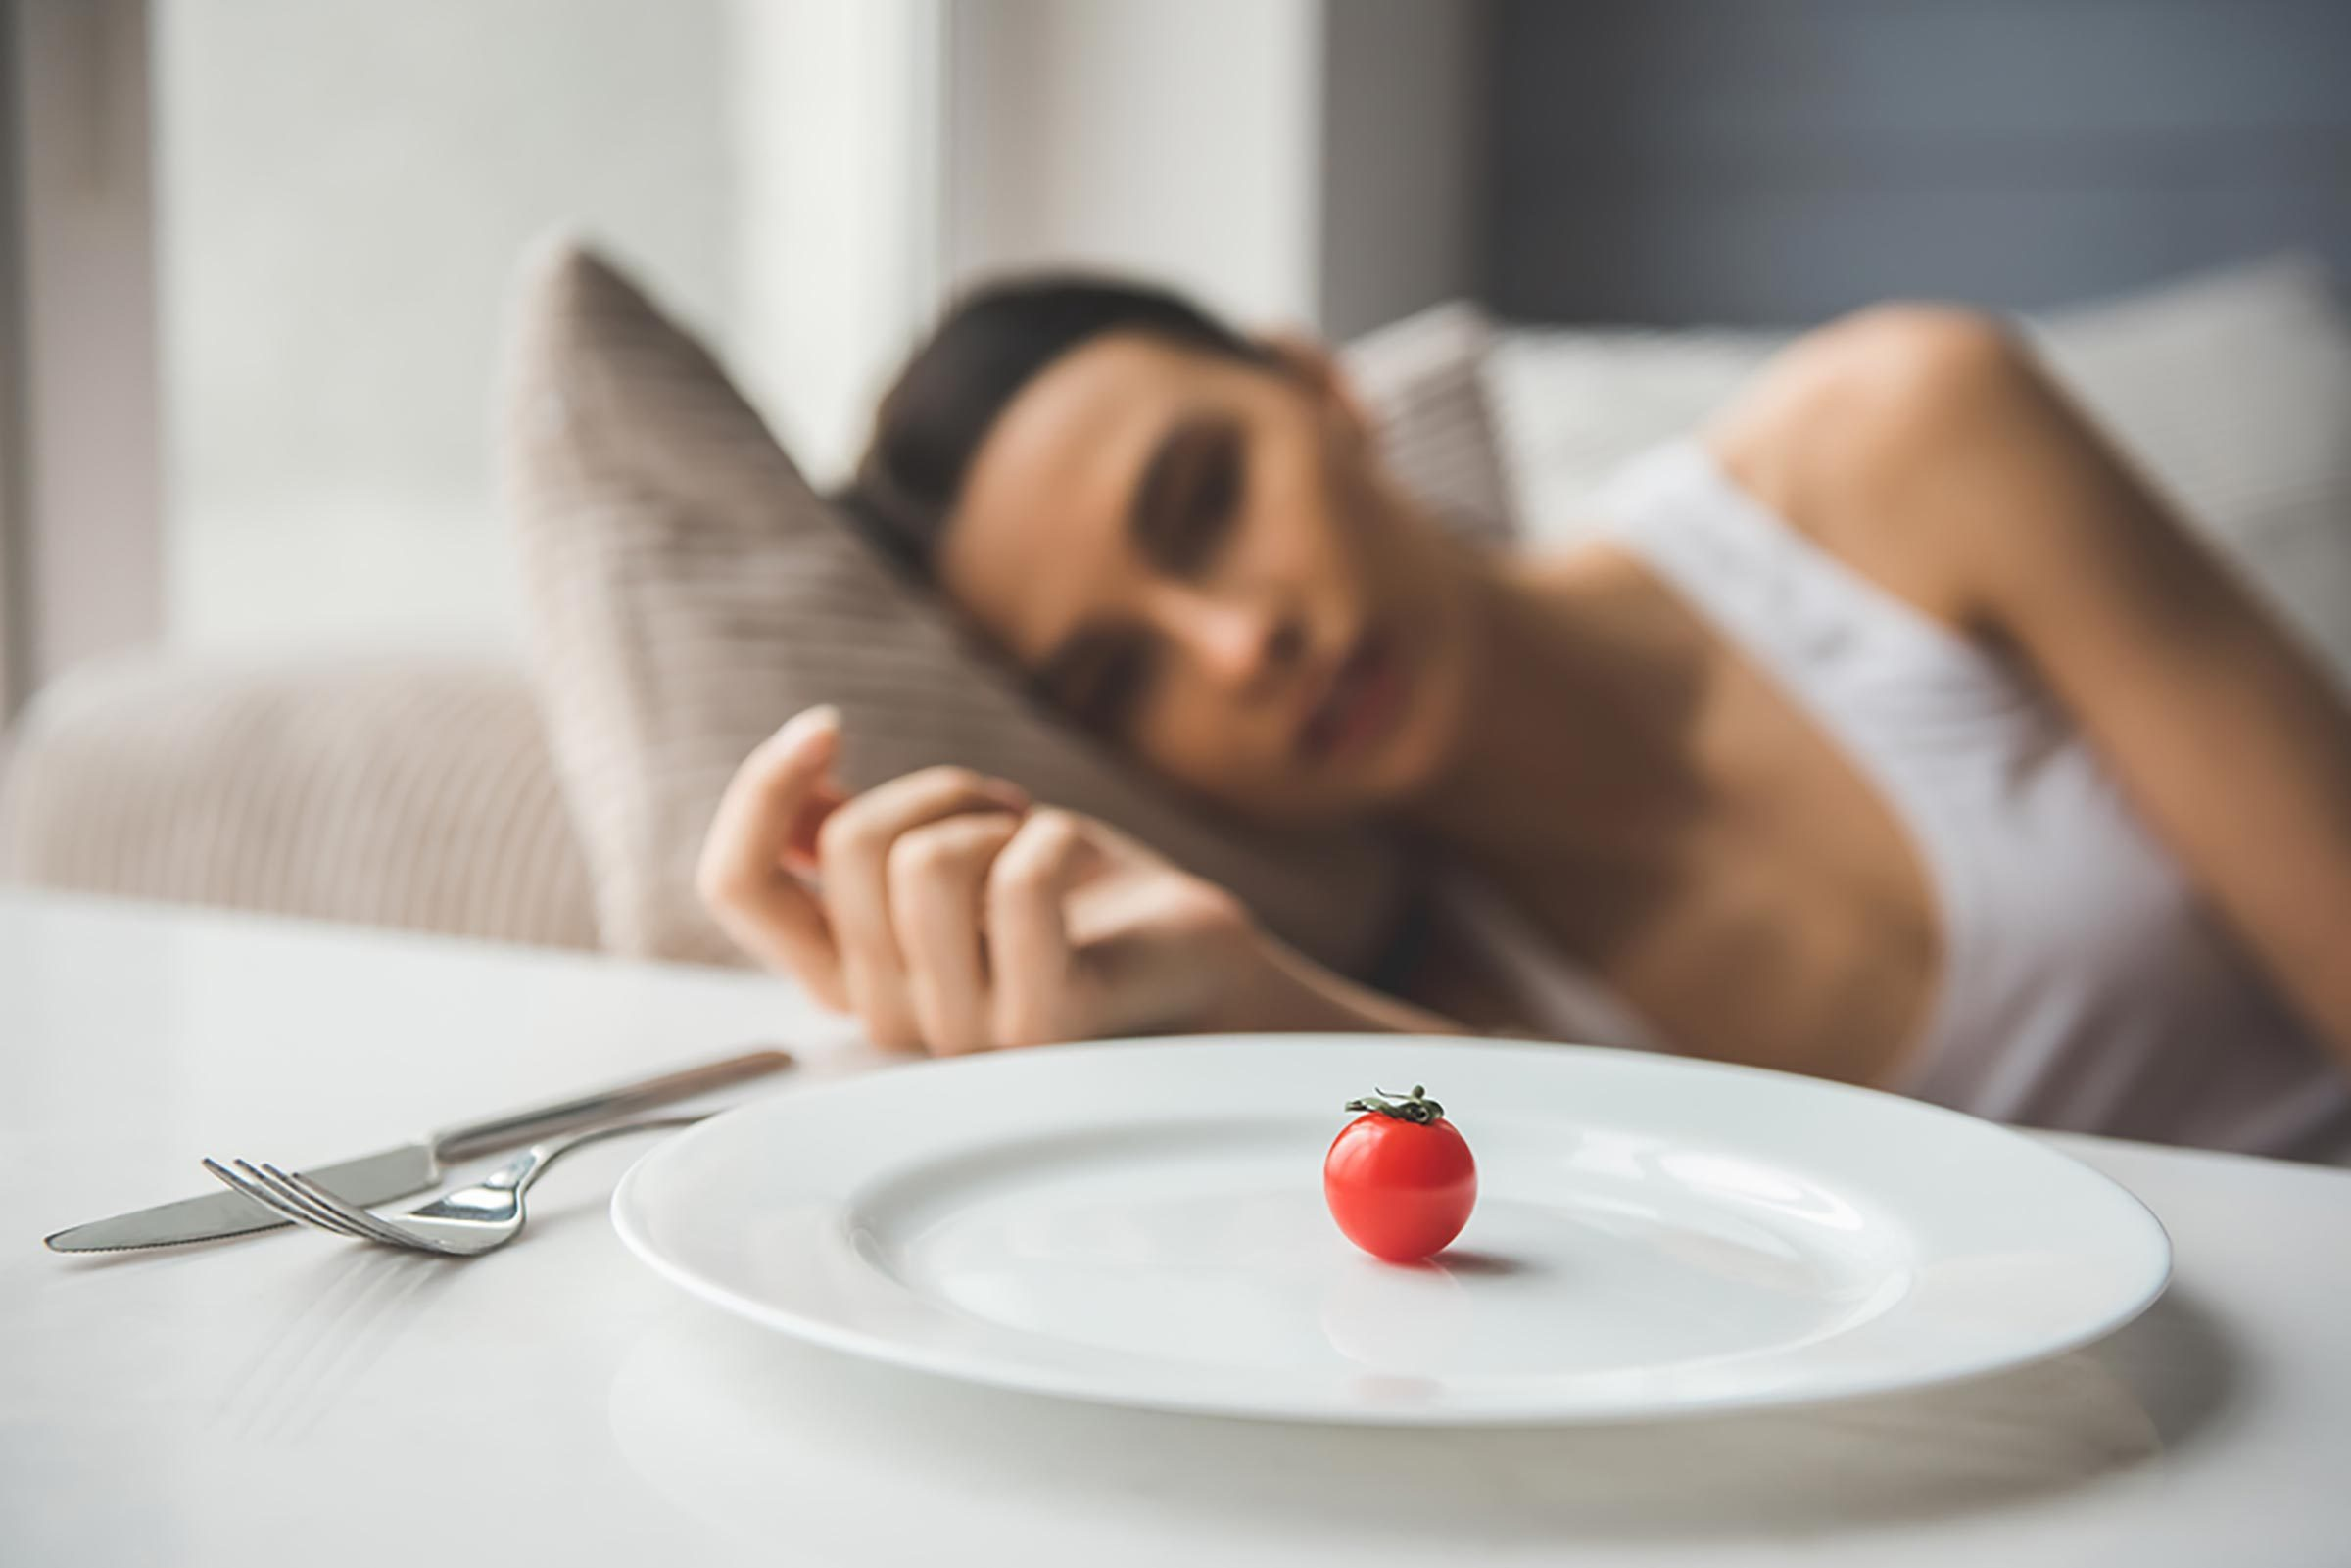 woman looking at tomato on plate